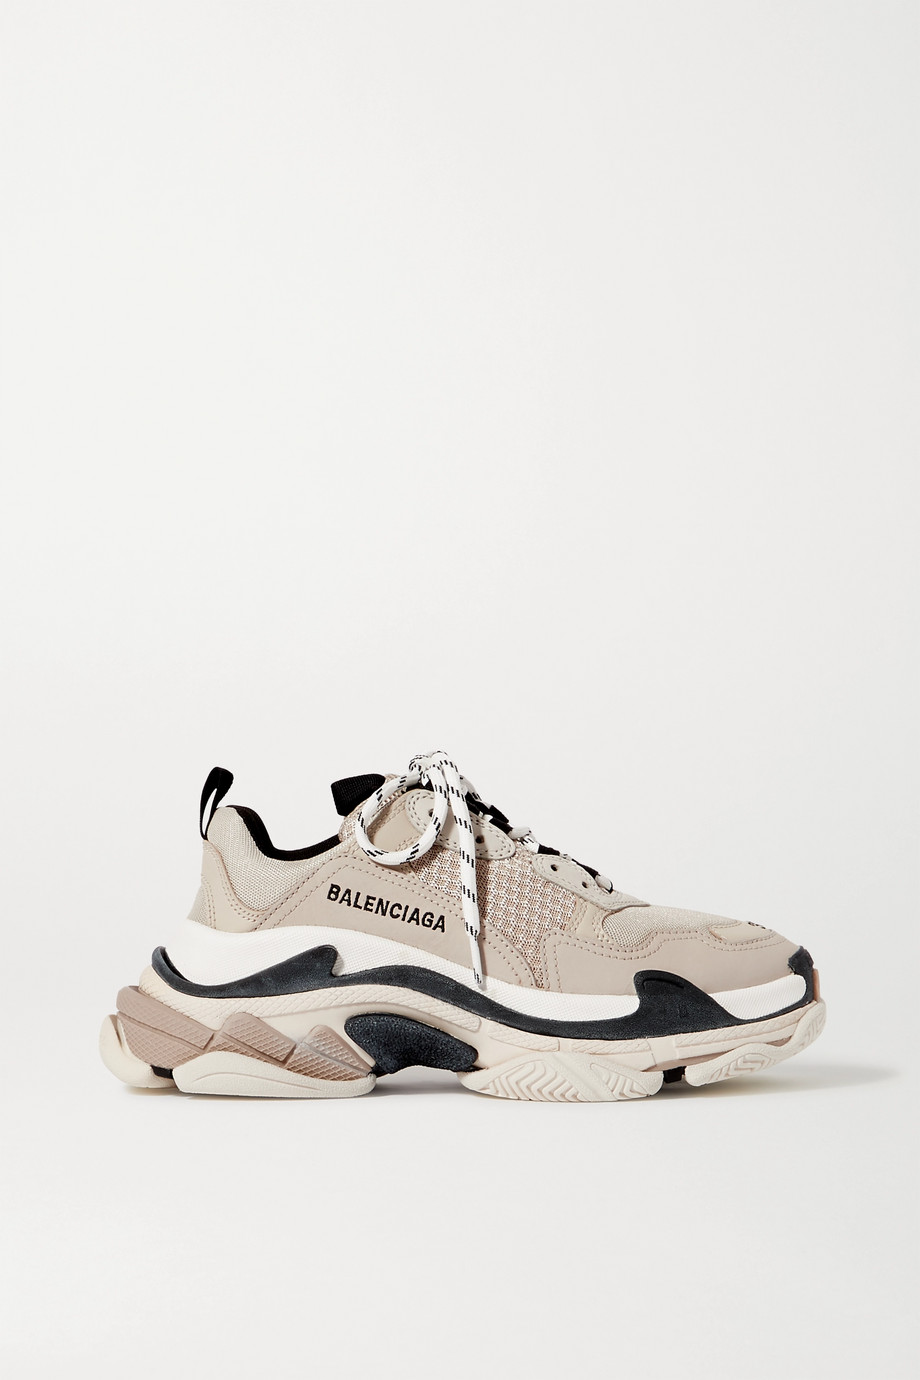 Balenciaga Triple S logo-embroidered leather and mesh sneakers